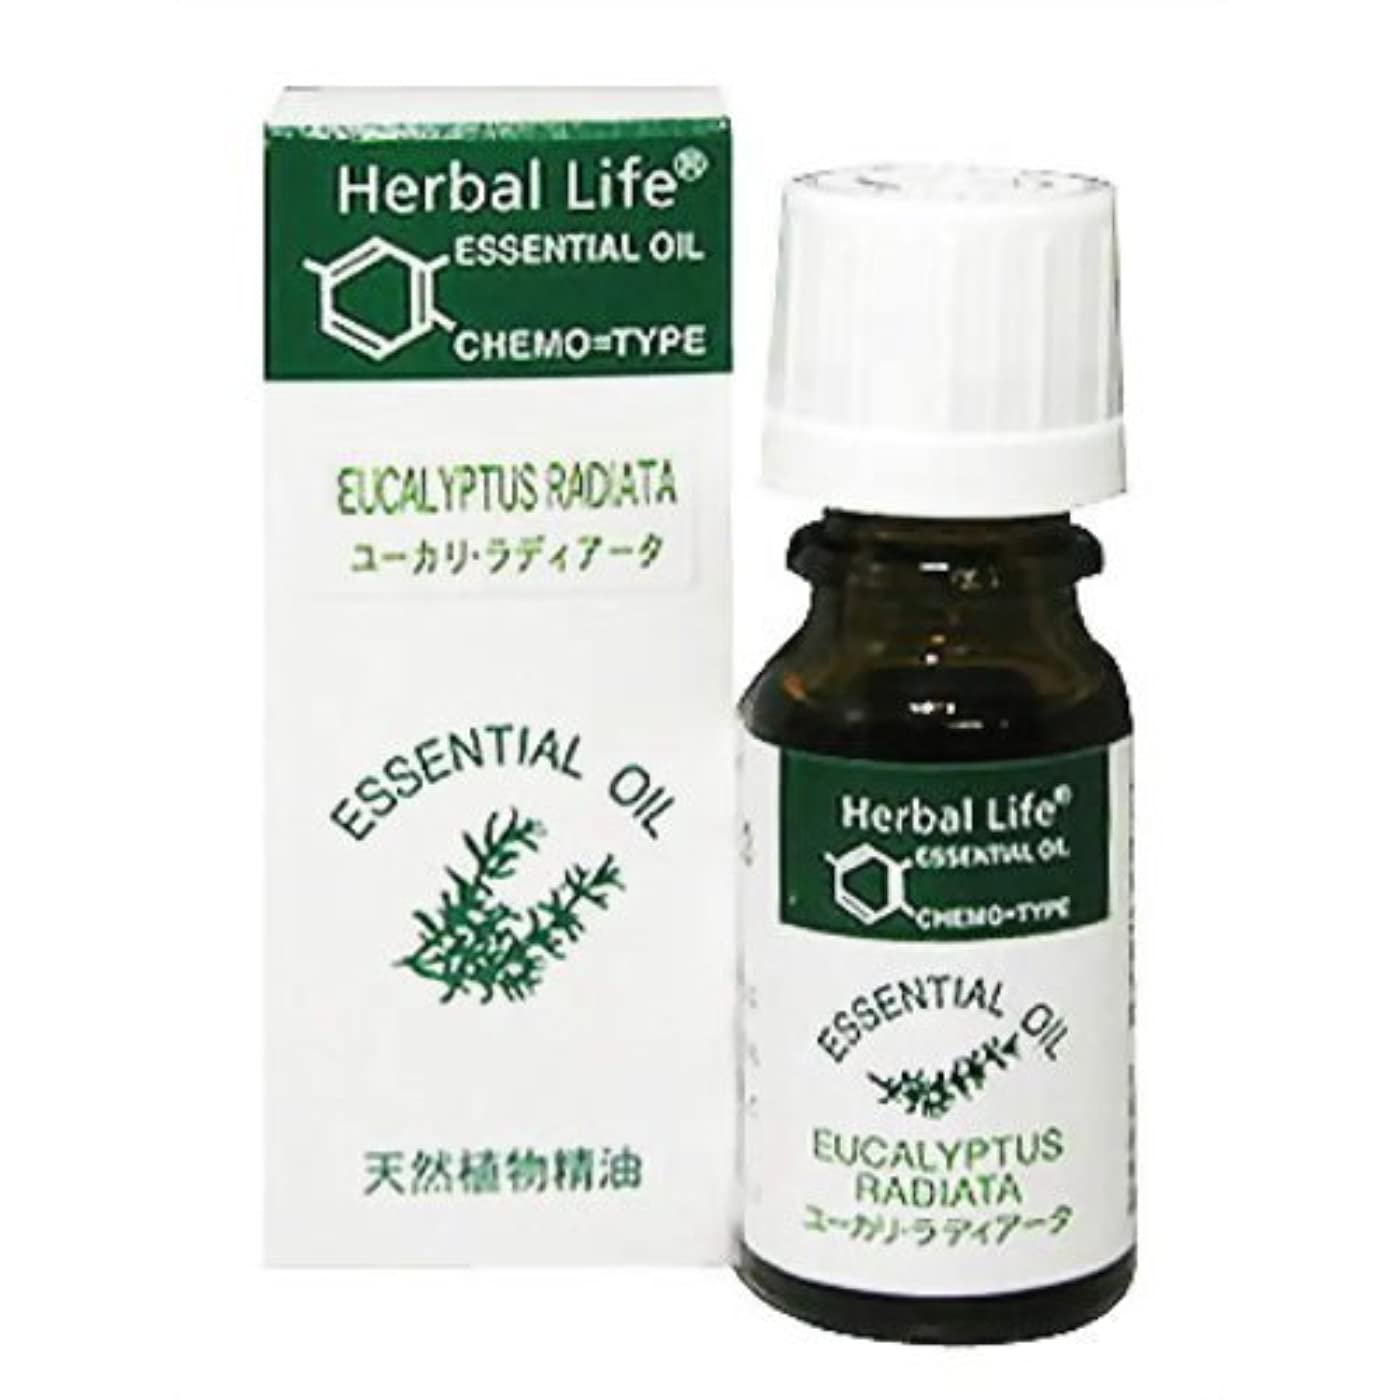 Herbal Life ユーカリ?ラディアータ 10ml